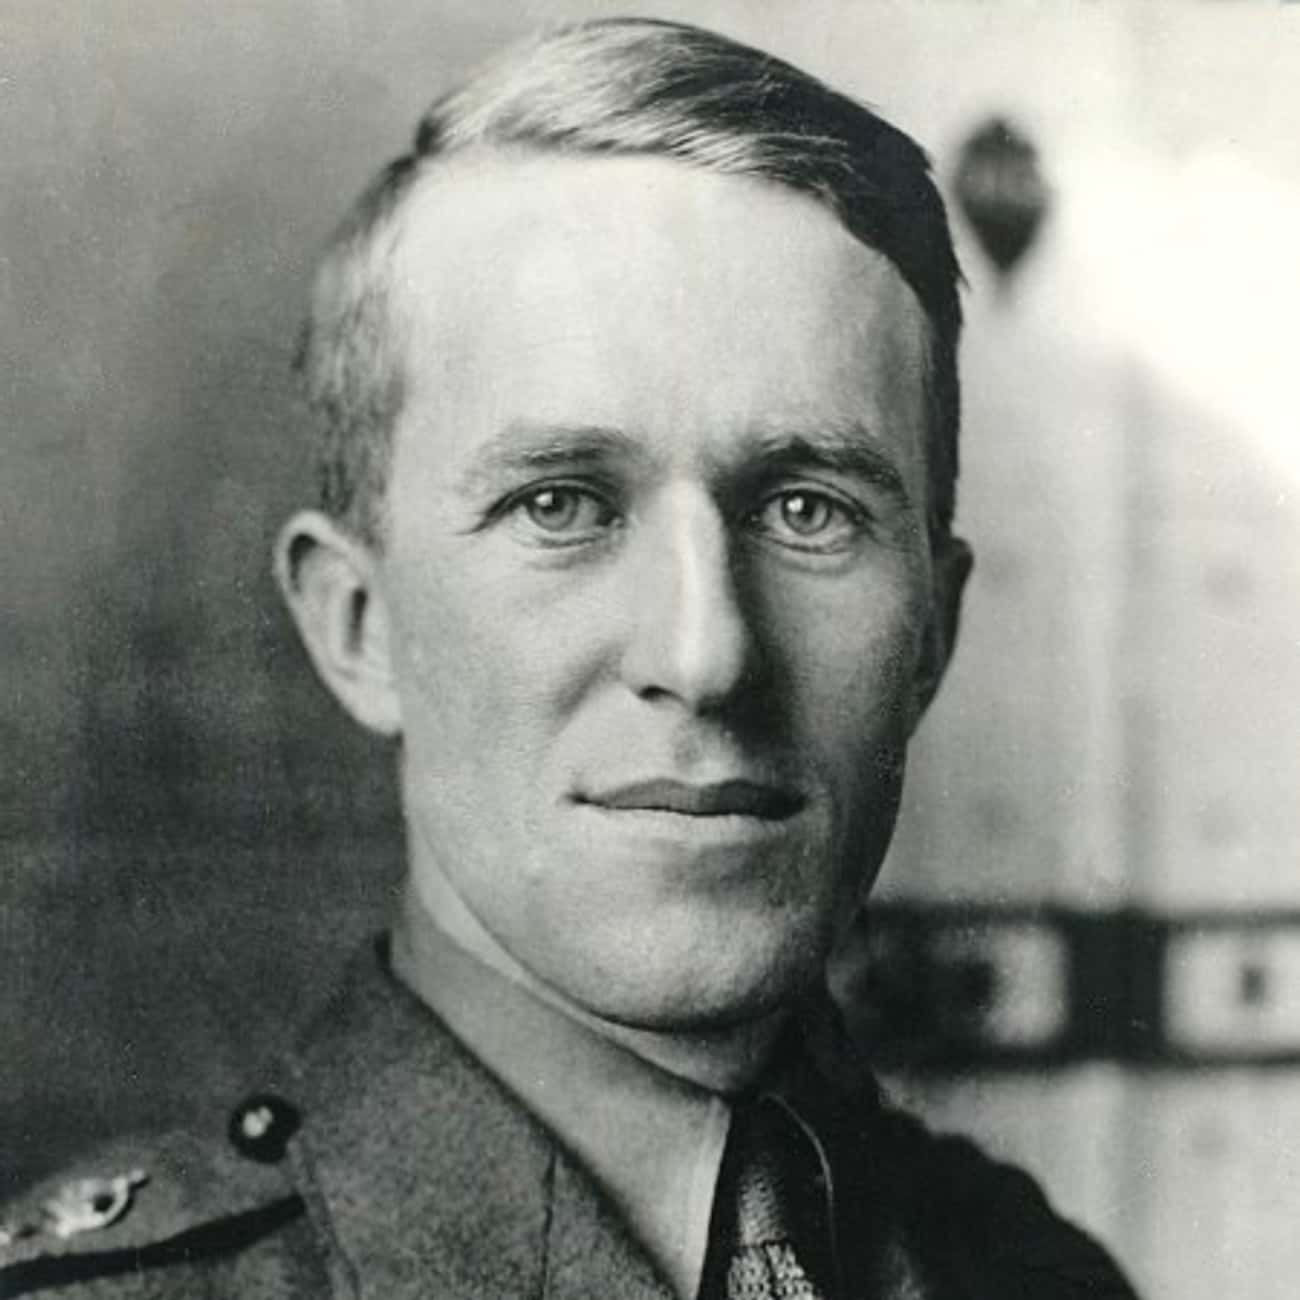 T. E. Lawrence Helped Change T is listed (or ranked) 2 on the list The Most Influential Illegitimate Children Throughout History